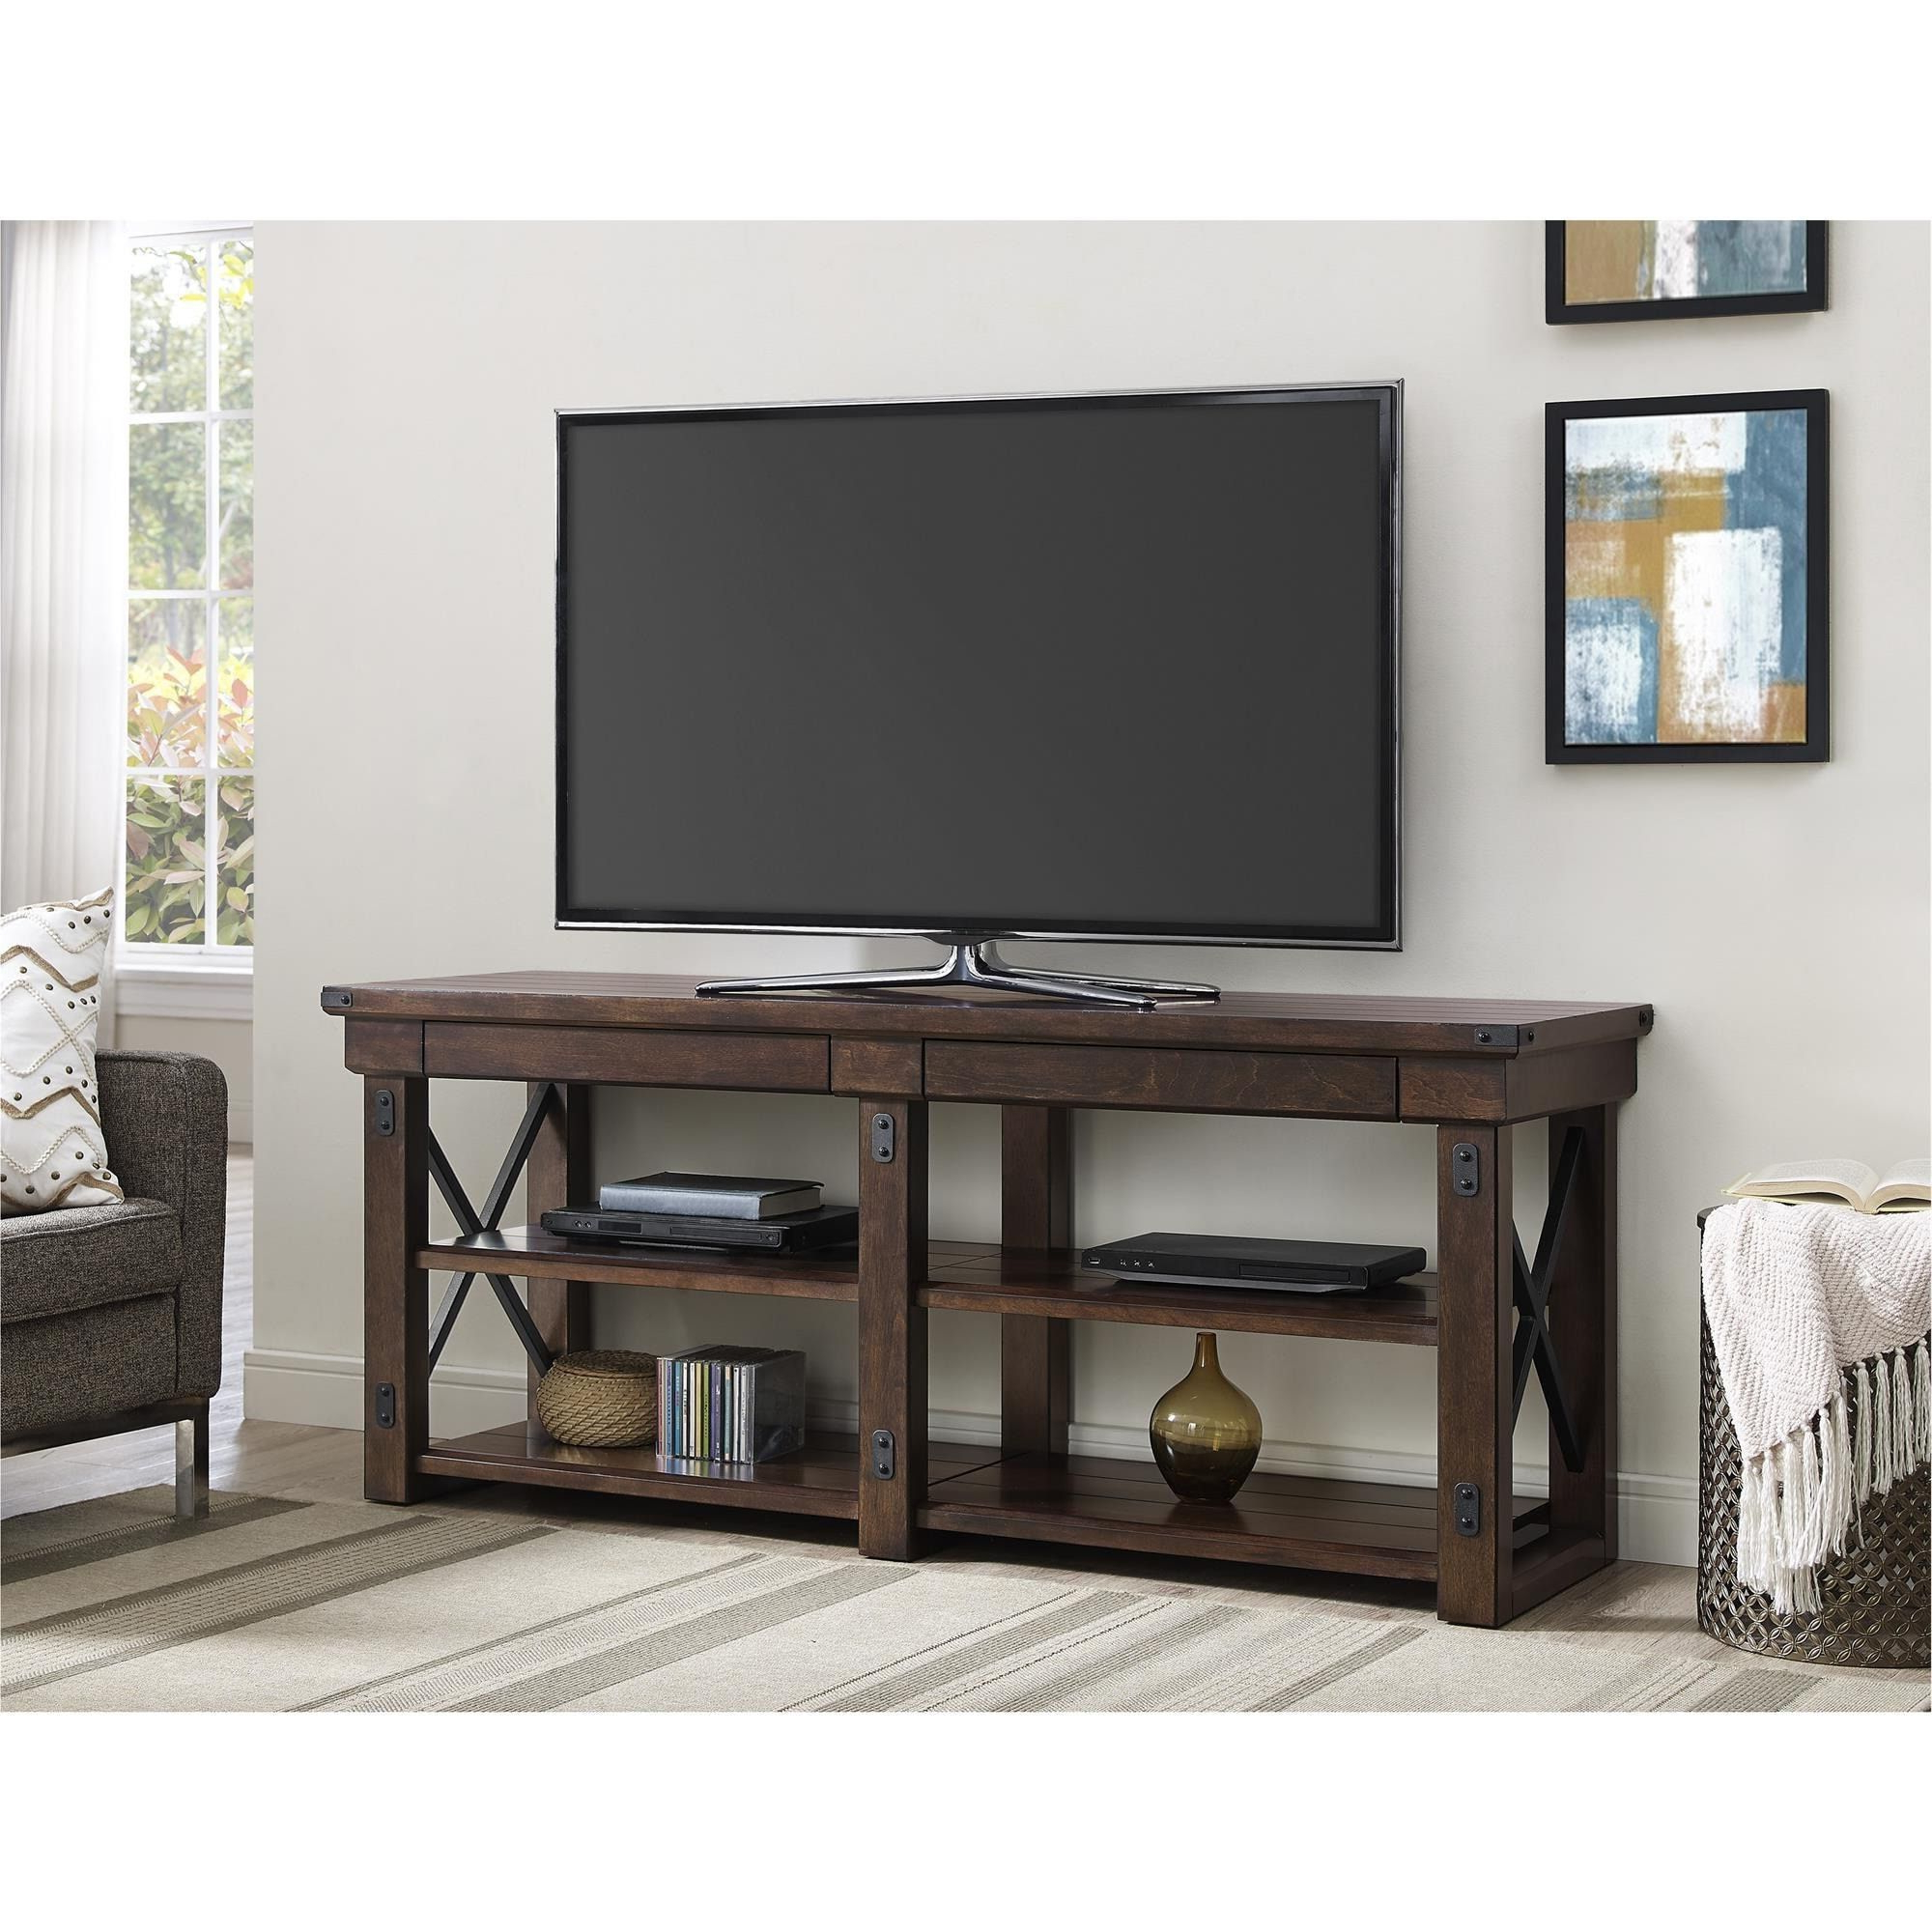 65 Inch Tv Stands With Integrated Mount Inside Famous Ameriwood Home Wildwood Mahogany Veneer 65 Inch Tv Stand (65 Inch Tv (View 2 of 20)